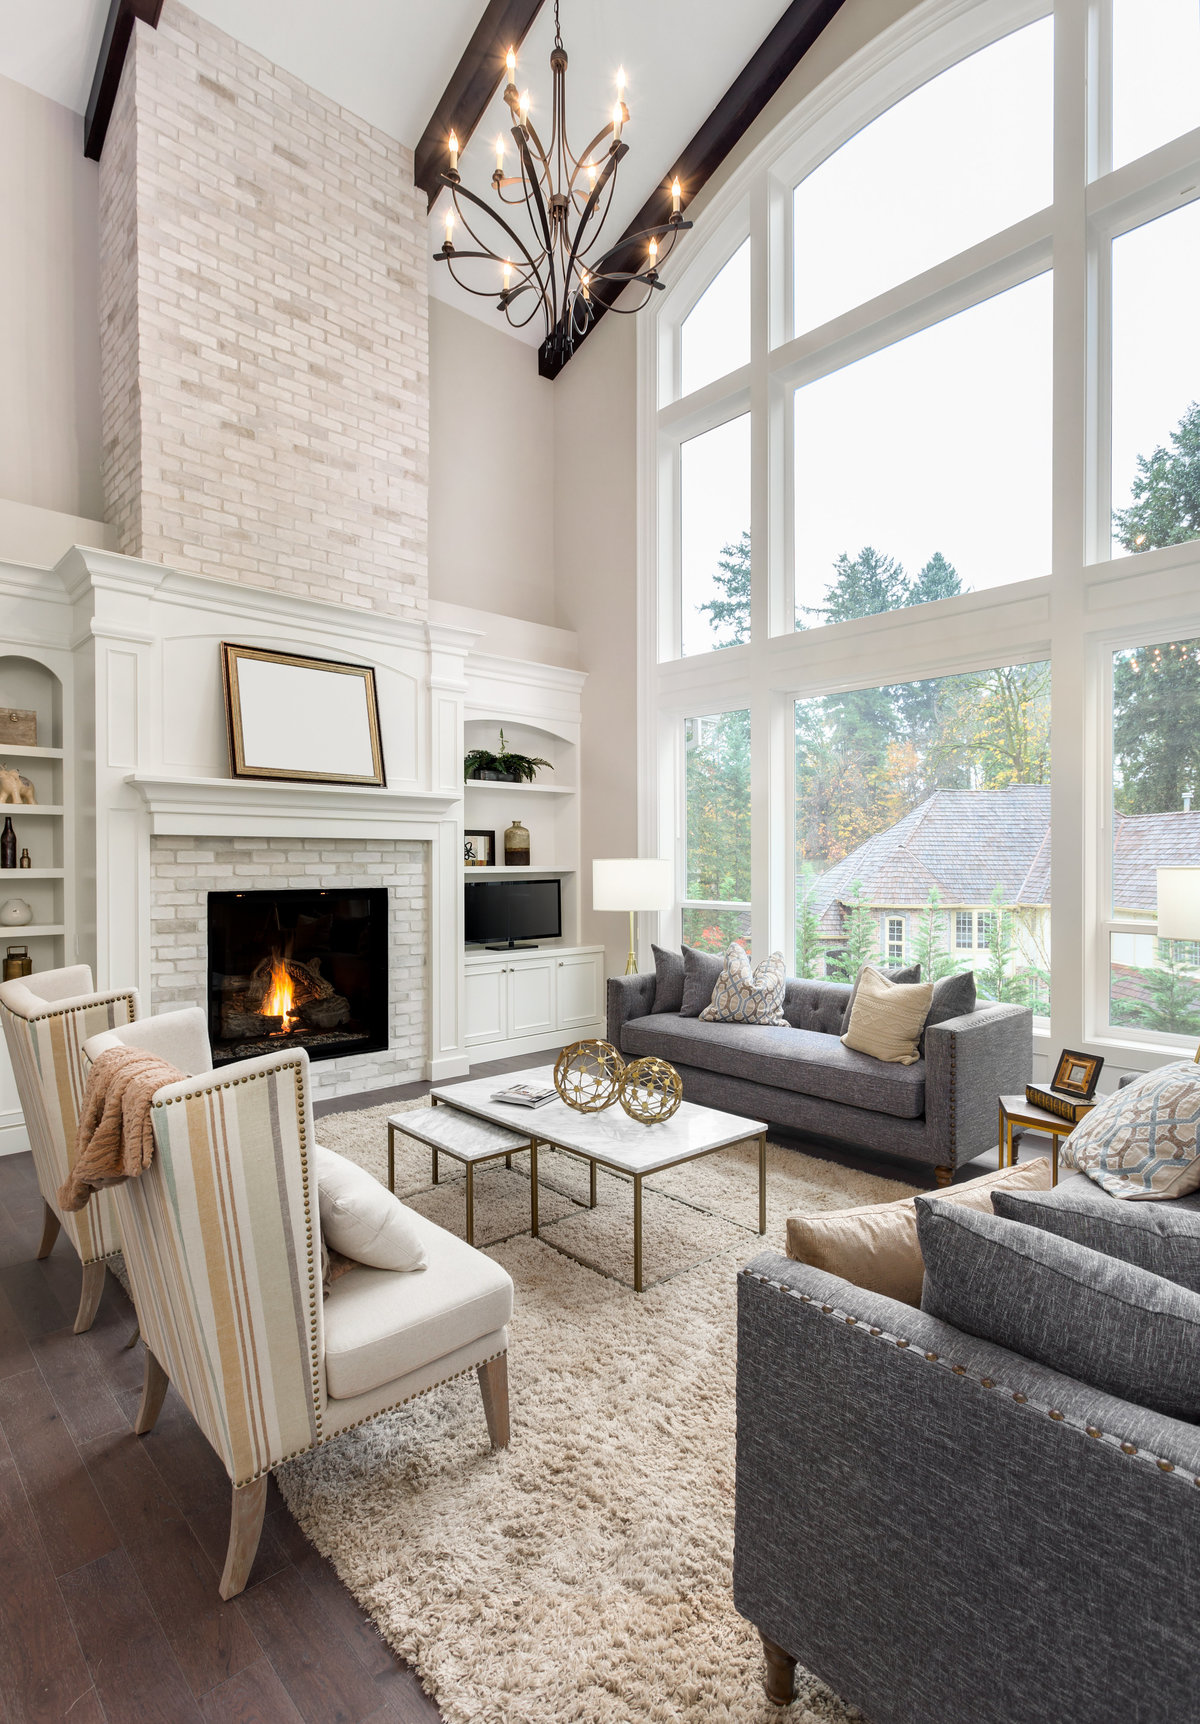 Oversized window design in living room